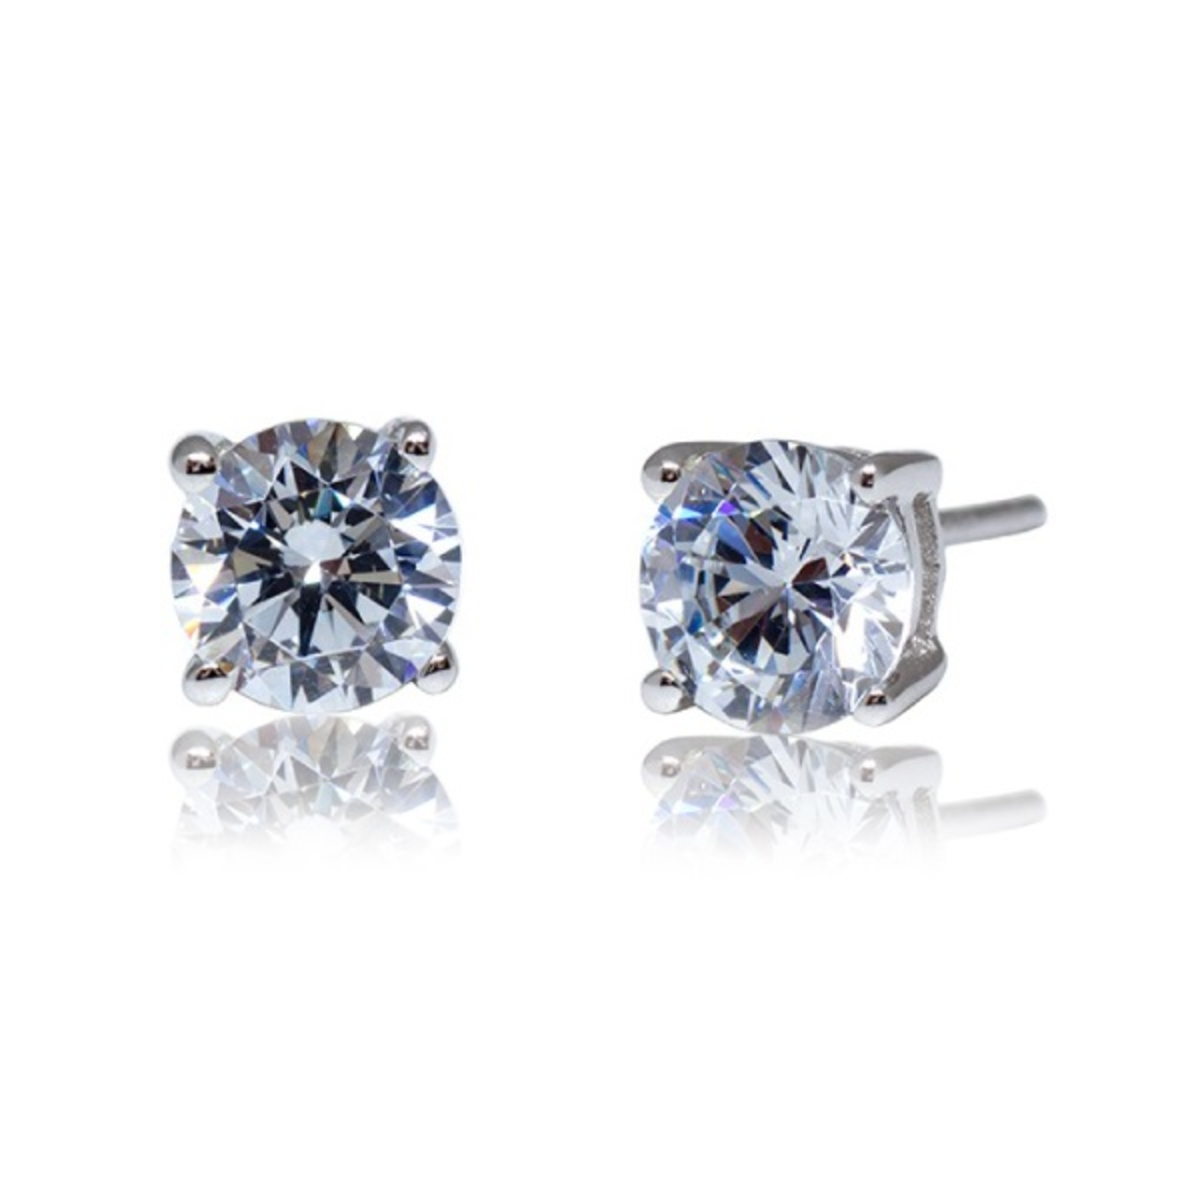 online johnlewis diamond buymogul white mogul earrings at stud solitaire gold pdp rsp cut princess main